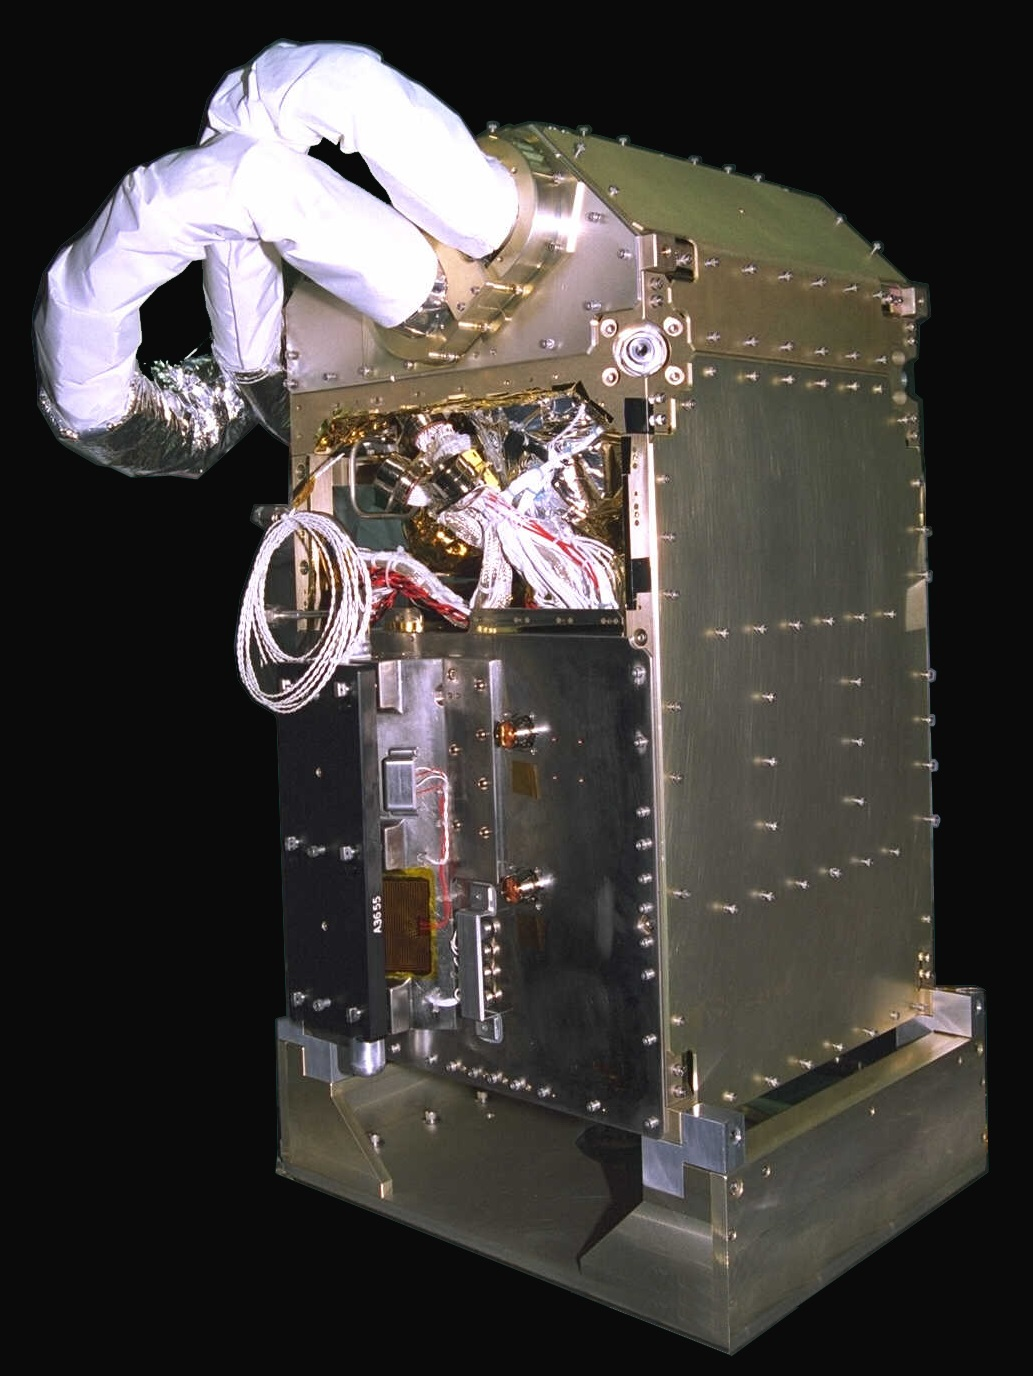 The NICMOS cryocooler packaged for installation on the Hubble Space Telescope.